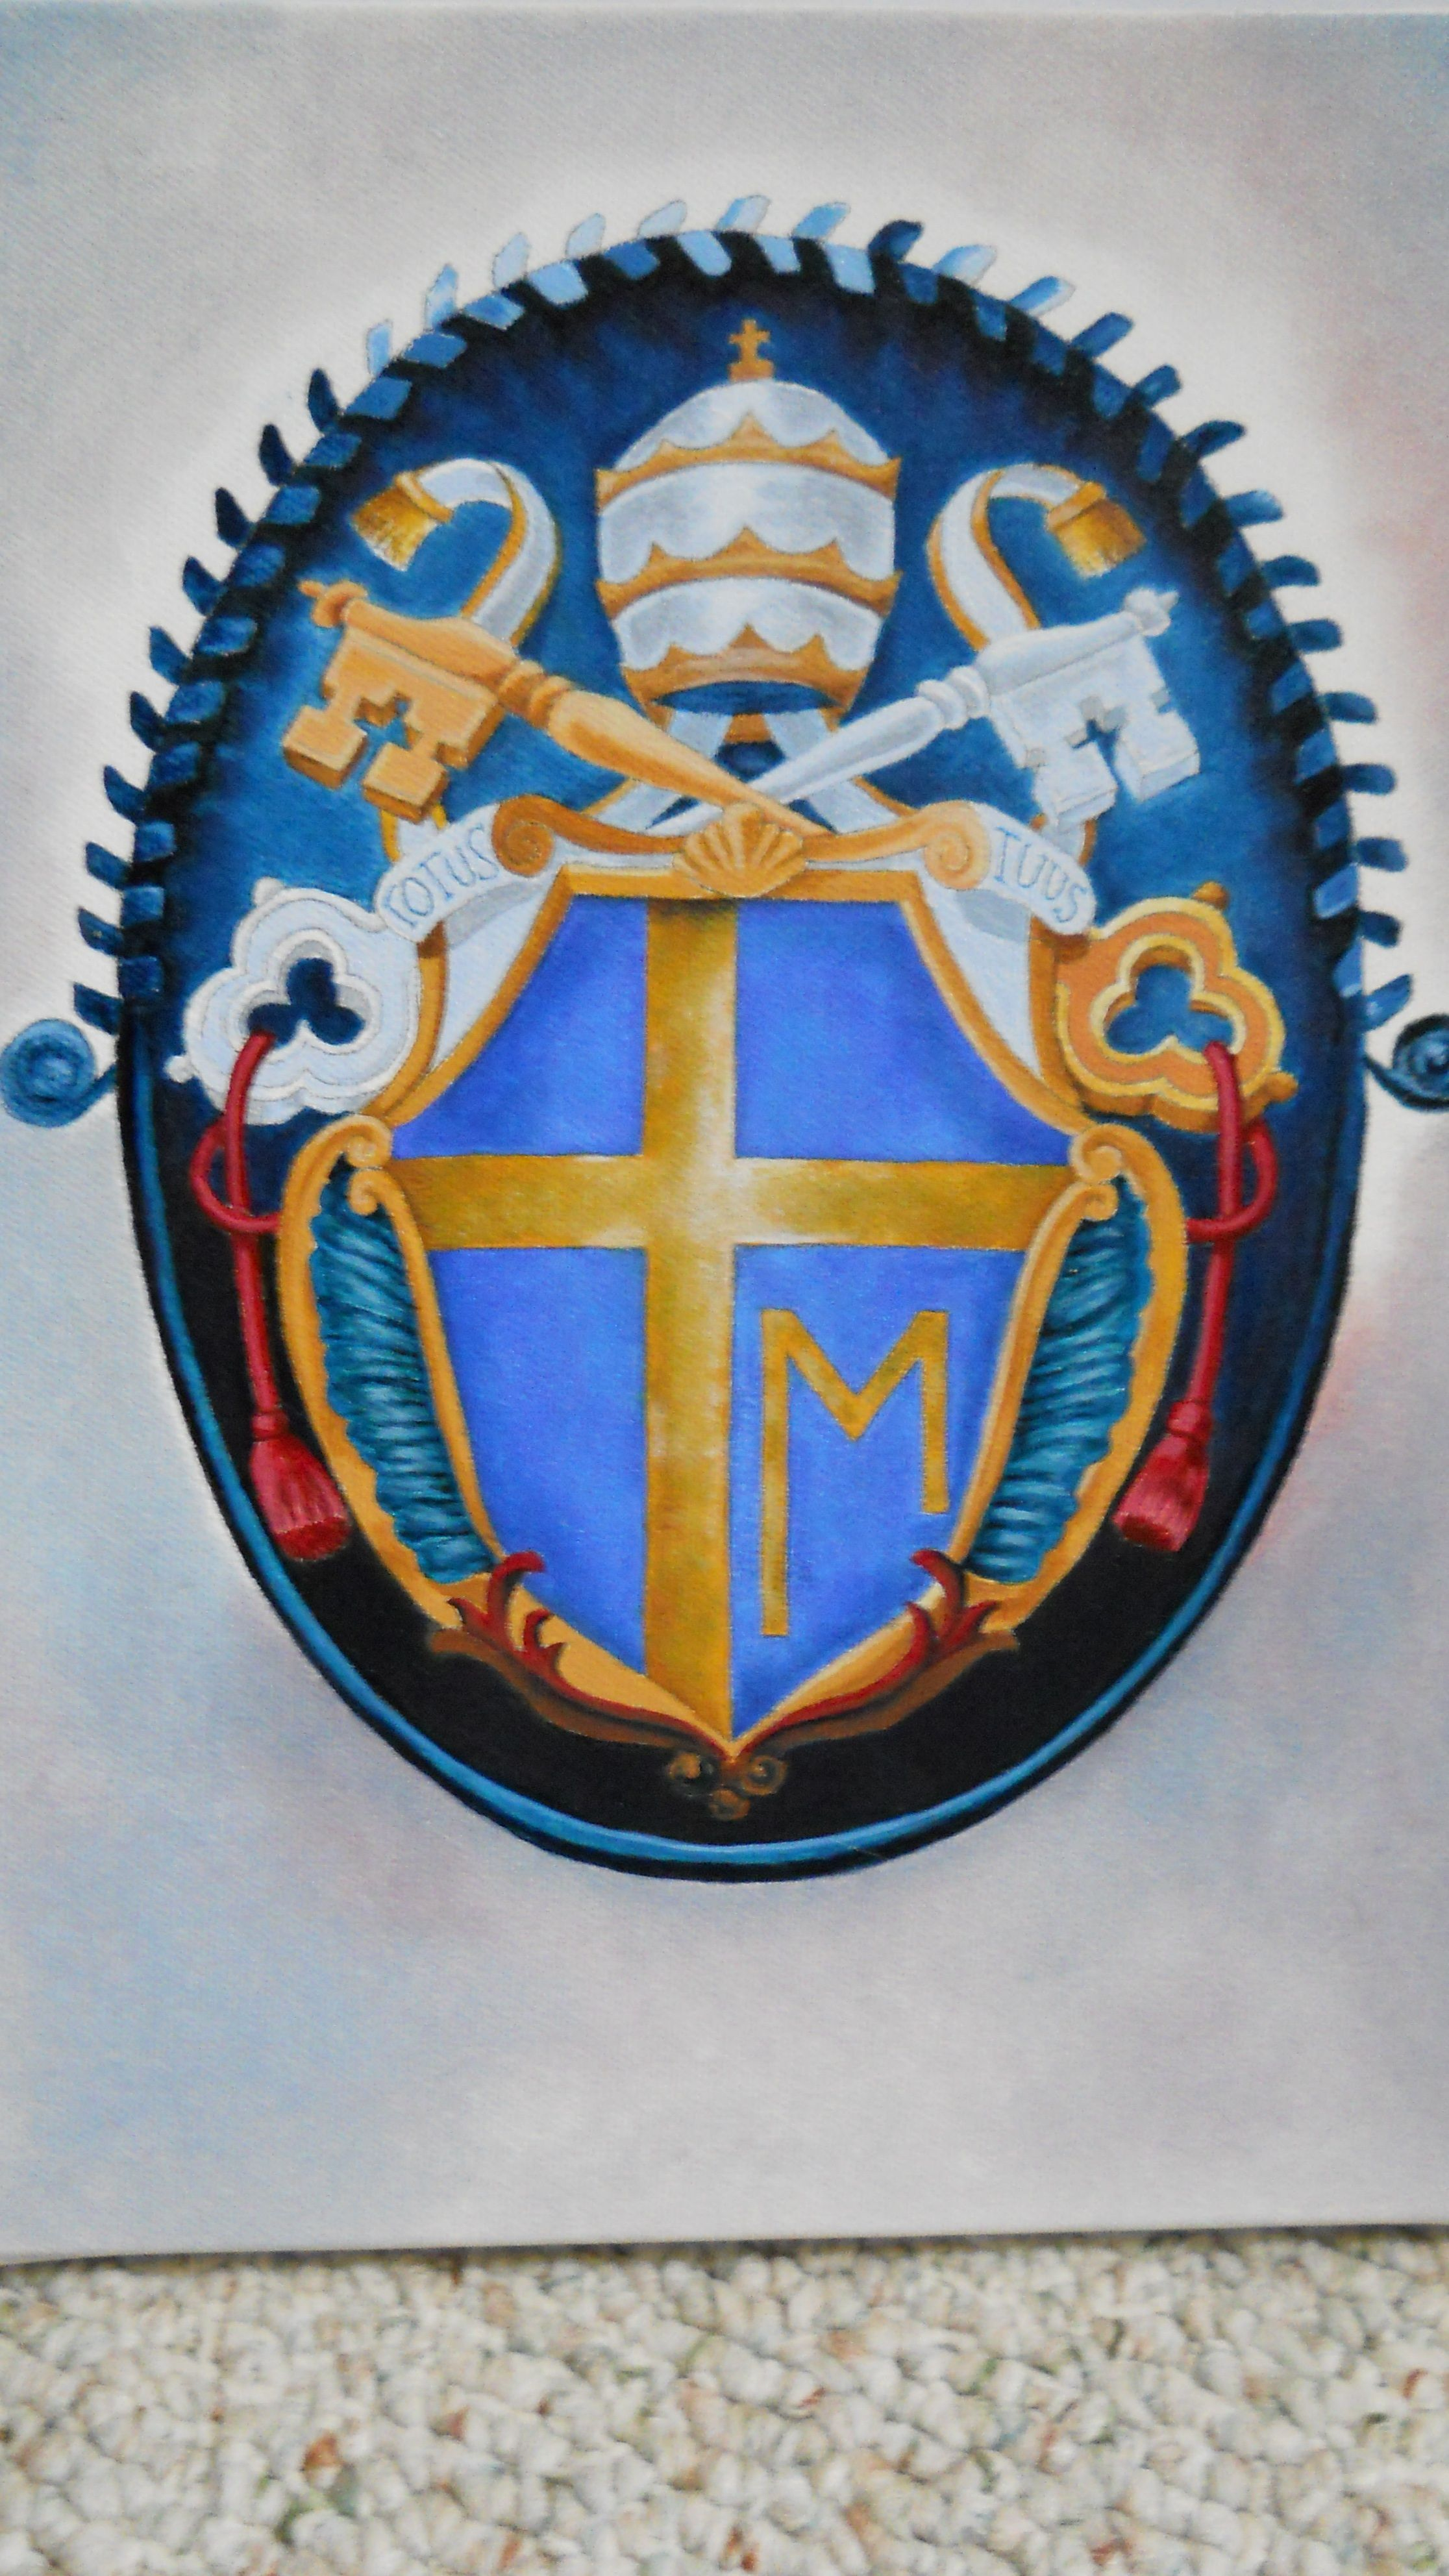 Pope john paul coat of armsoil on canvas by raven wing hughes pope john paul ii coat of arms by raven wing hughes buycottarizona Choice Image